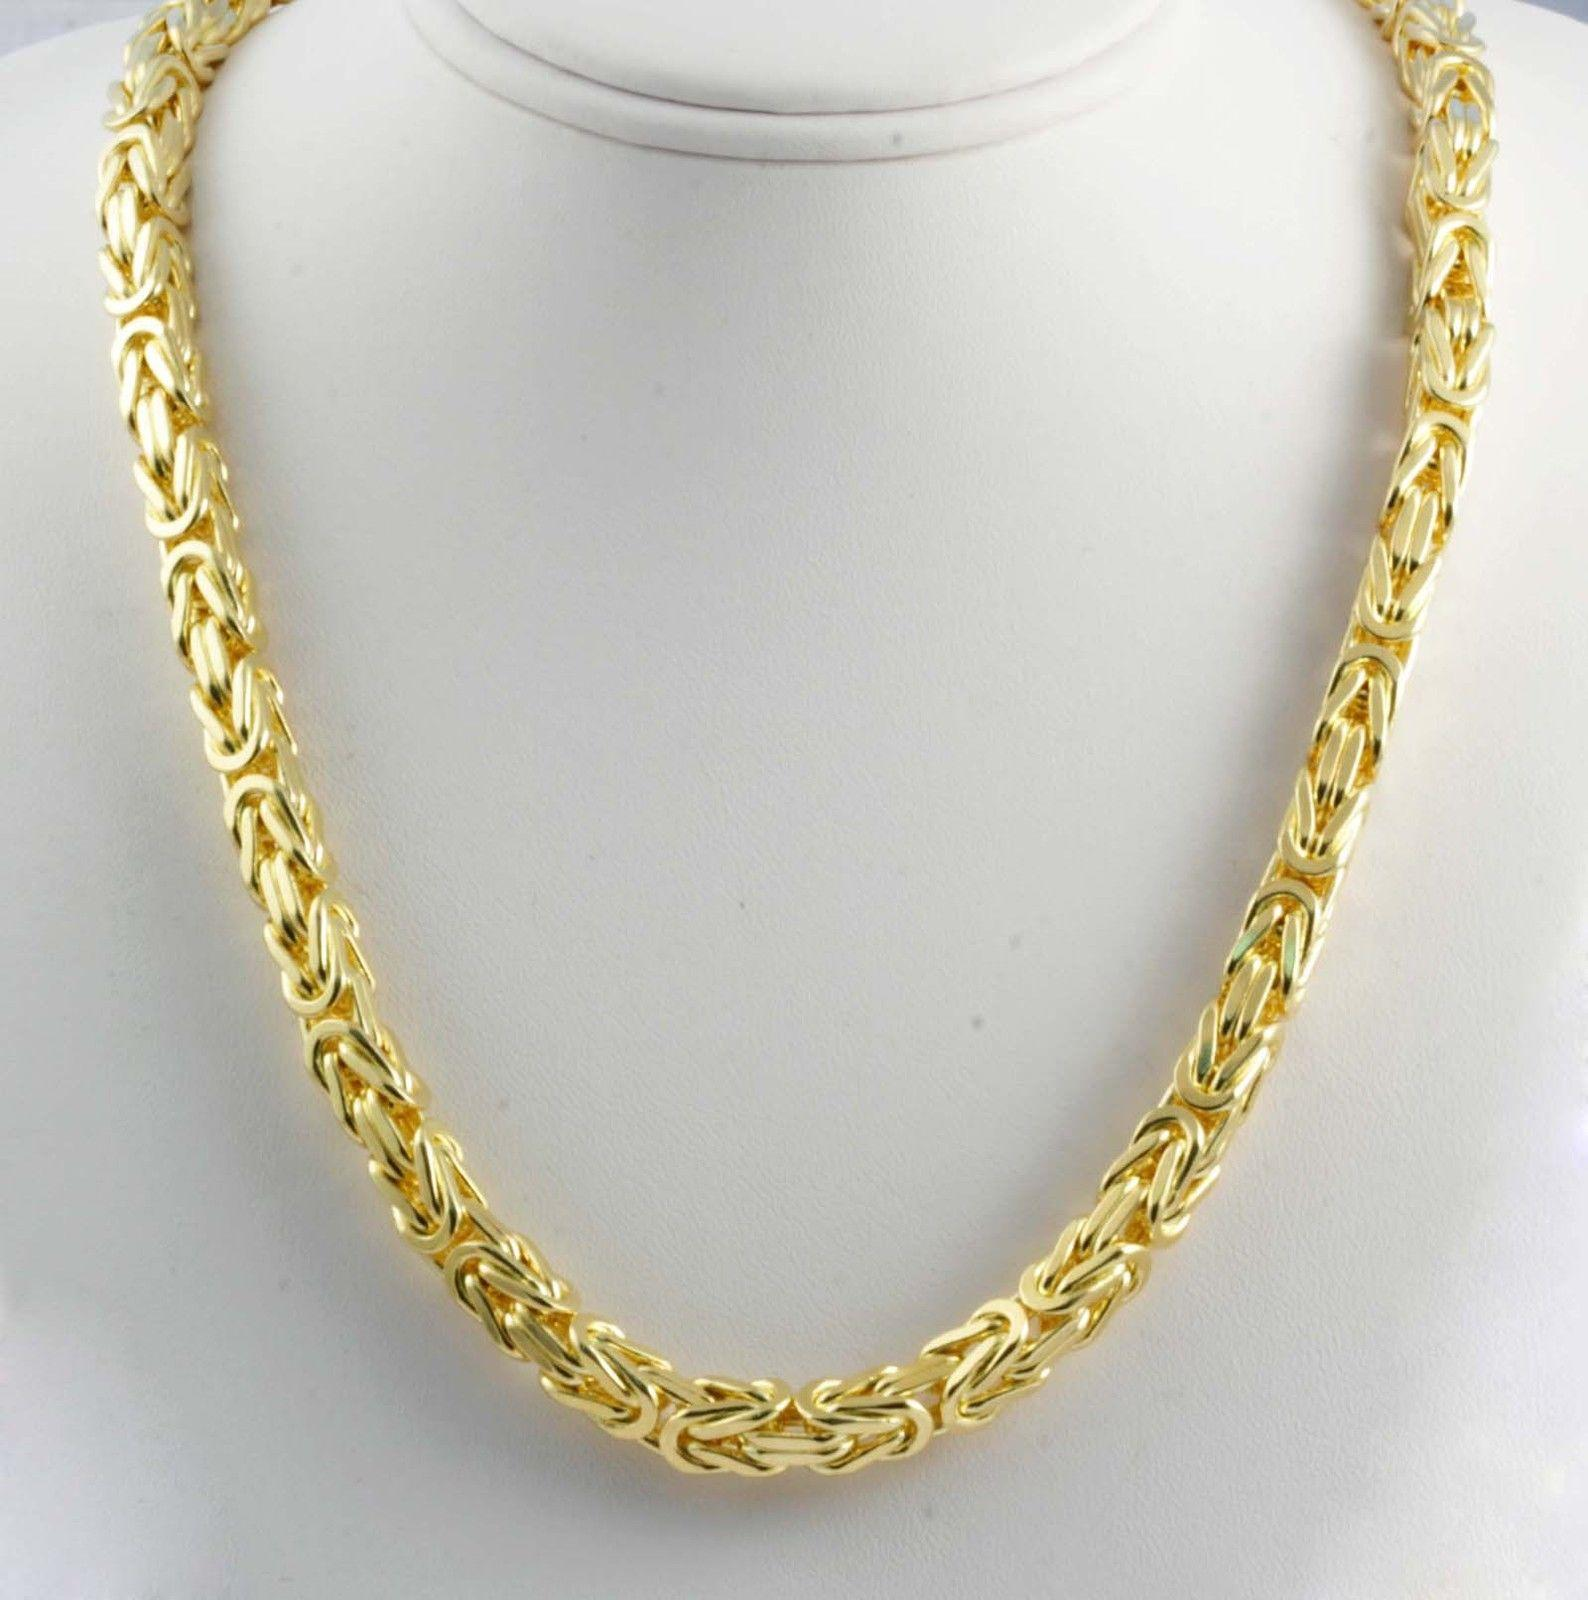 gold chains necklace diamond luxury tennis savage chain x mens wear